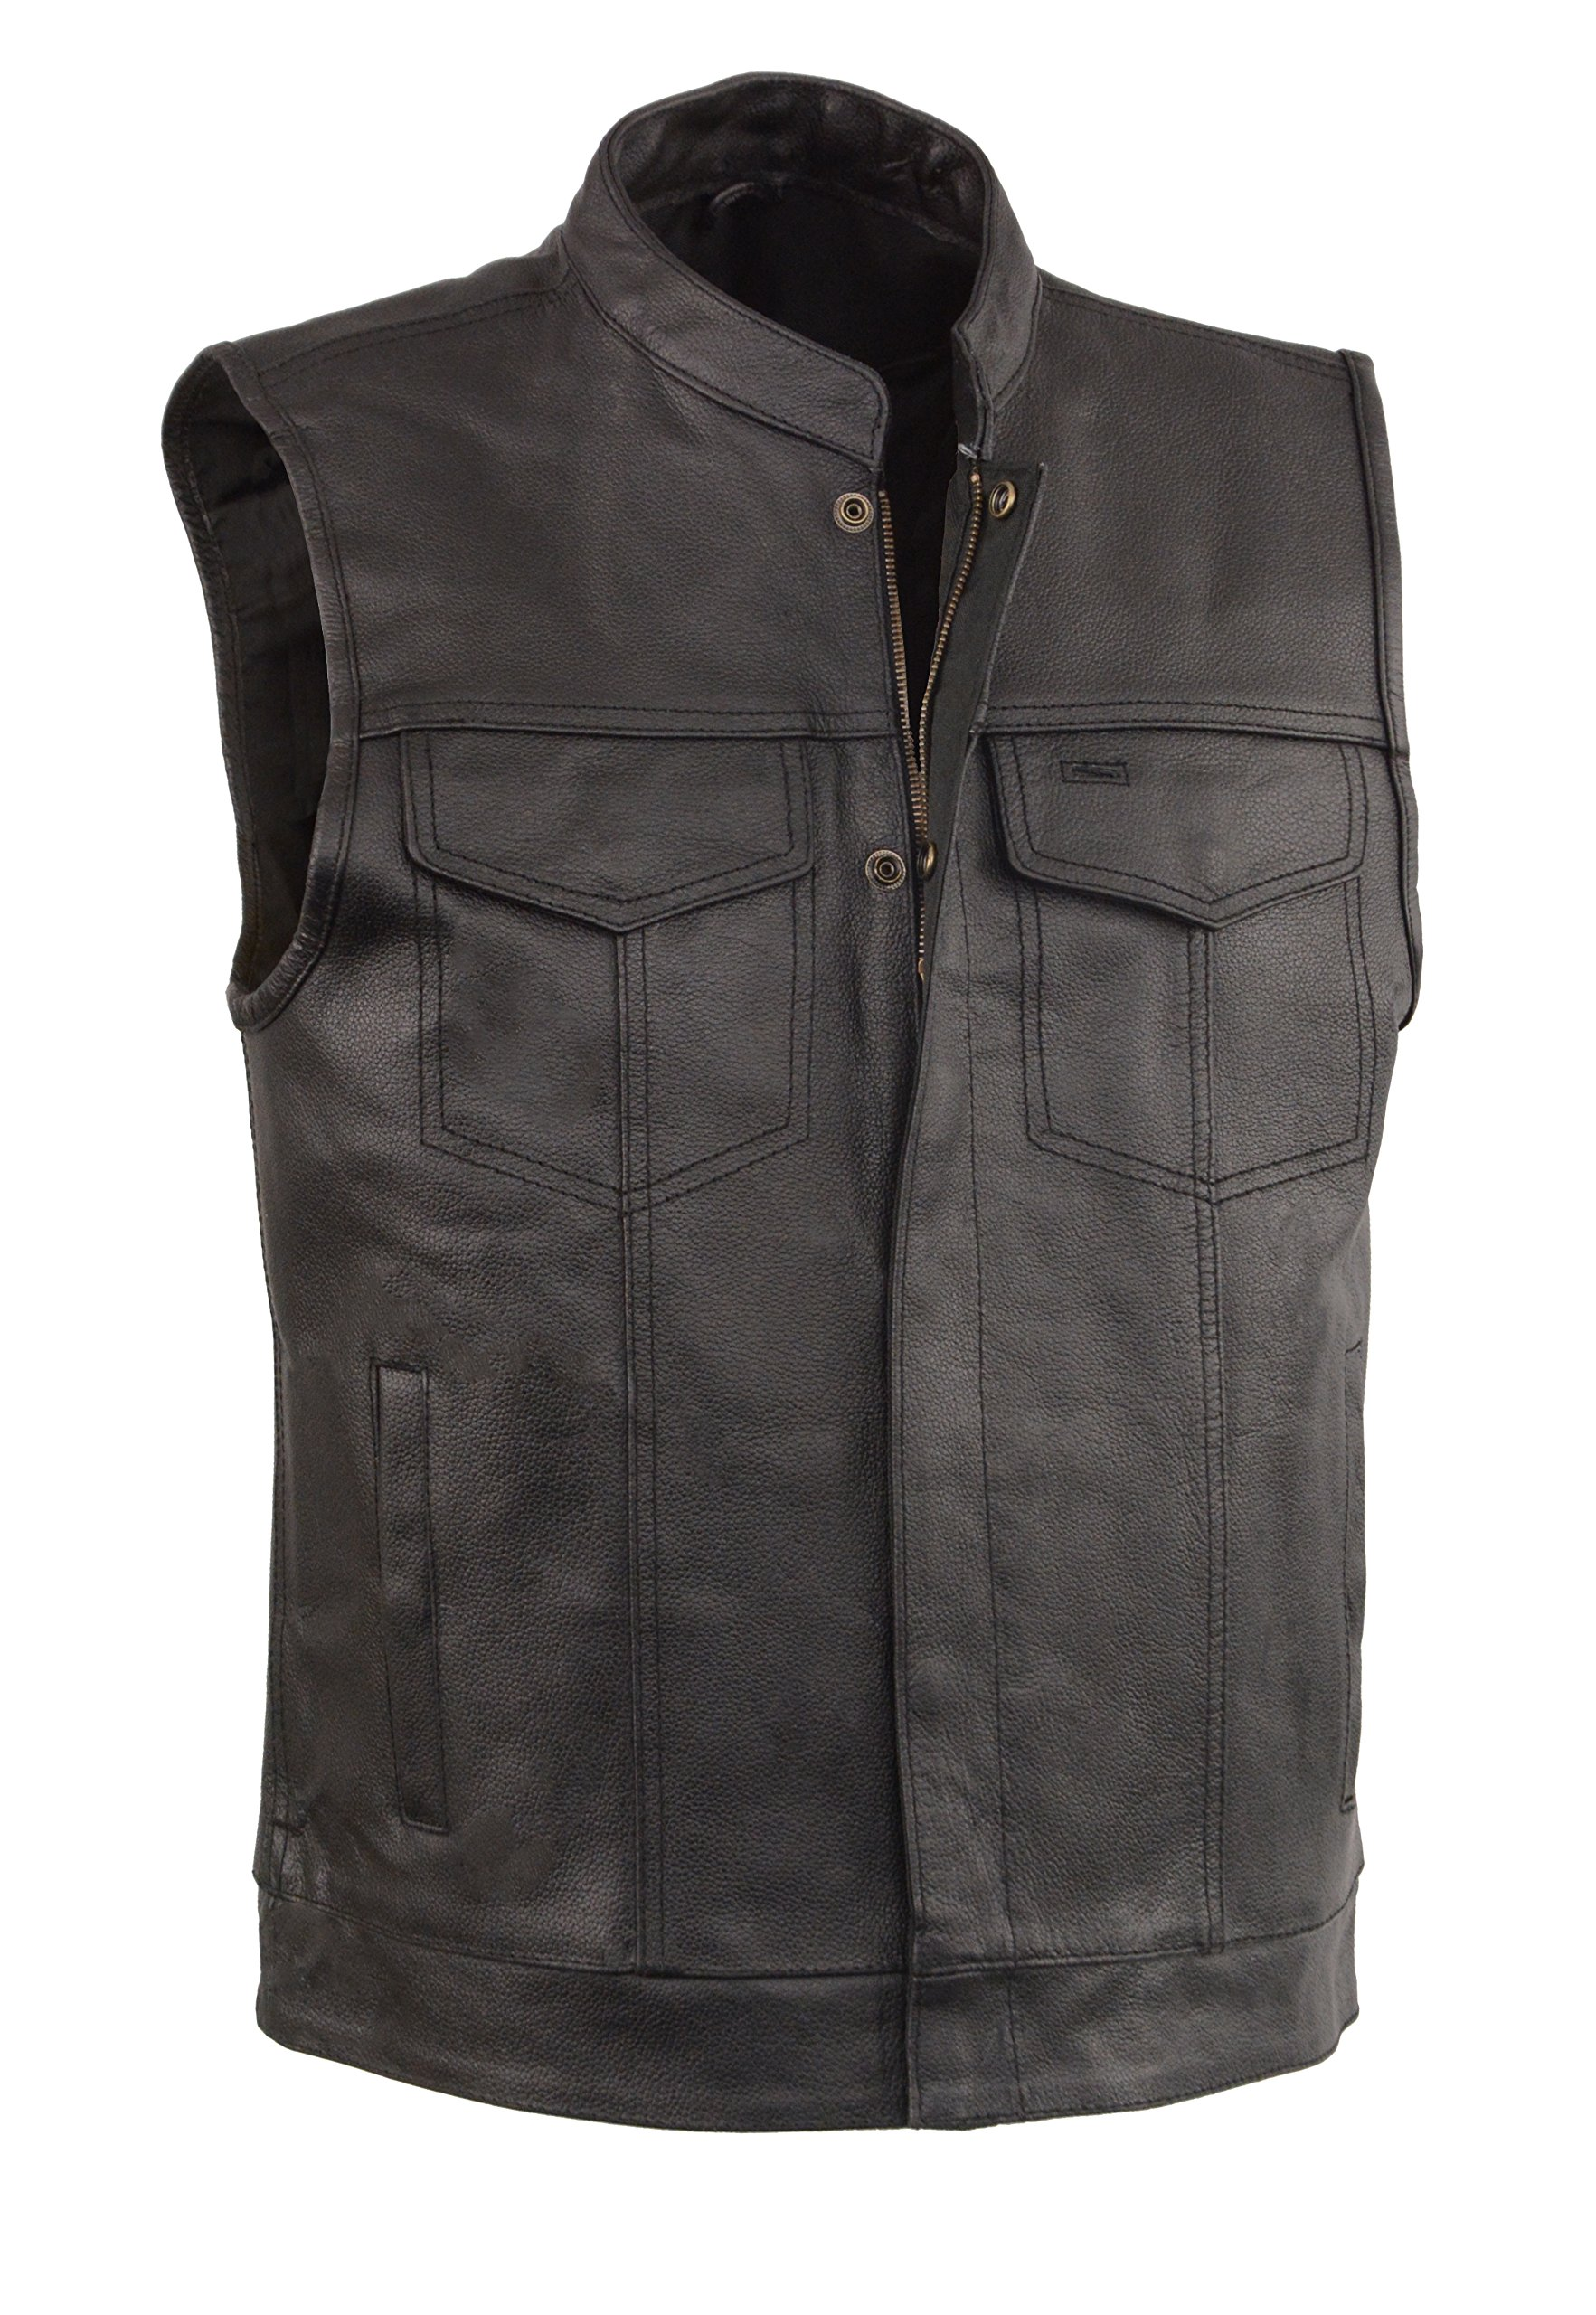 EVENT LEATHER Men's Leather Motorcycle Vest Zipper & Snap Closure w/2 Inside Gun Pockets & Single Panel Back (X-Large)